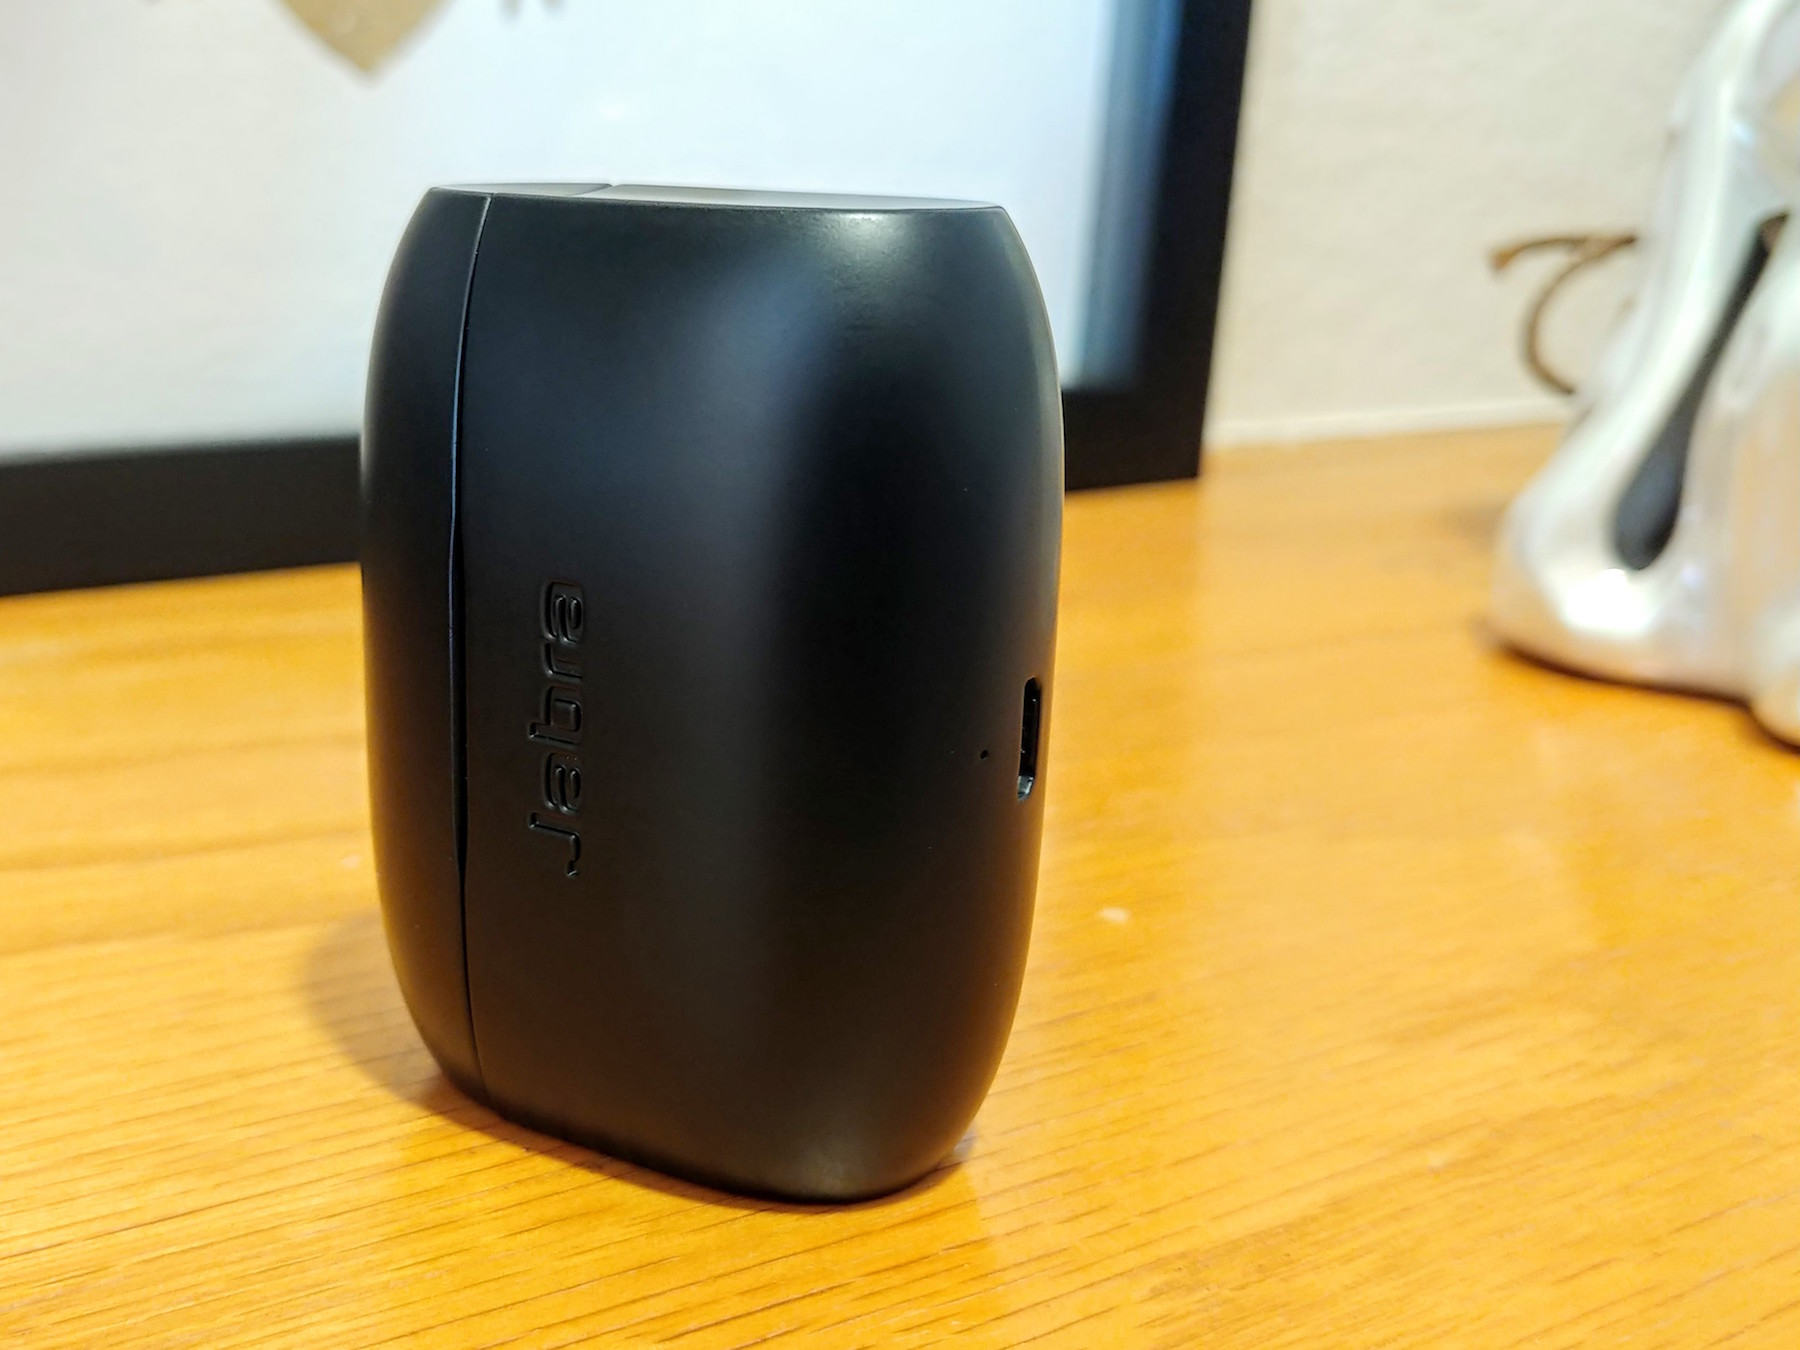 e76716a92a8 Prior to the Jabra Elite 65t, my favorite Bluetooth earbud case was the  Rowkin Stereo Charge, a 2100mAh beast that has a full-size USB-A port to  charge your ...